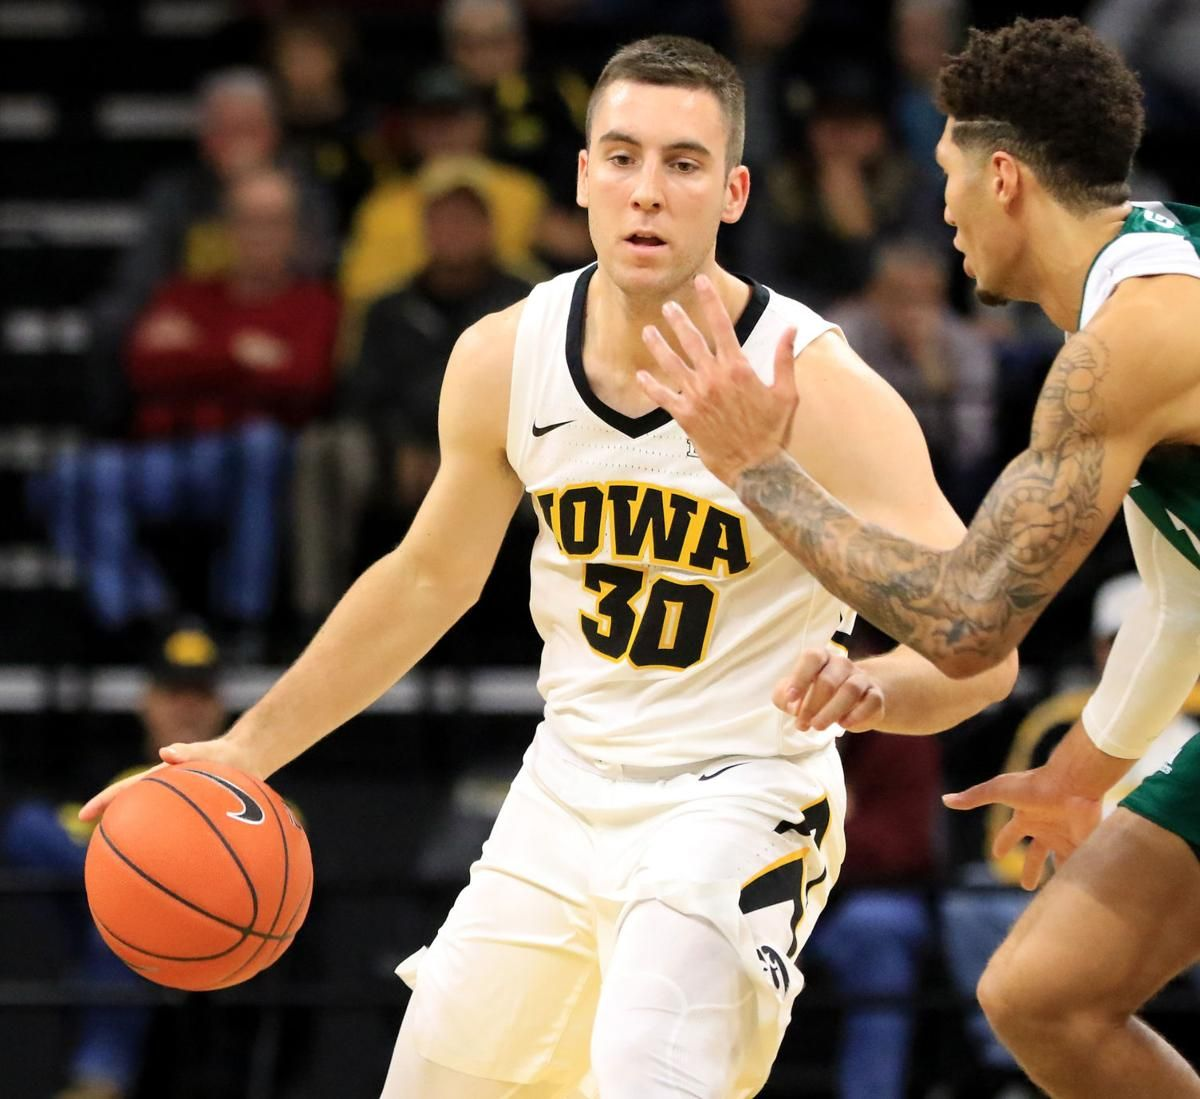 Hawkeyes shooting free throws at record pace Free throw